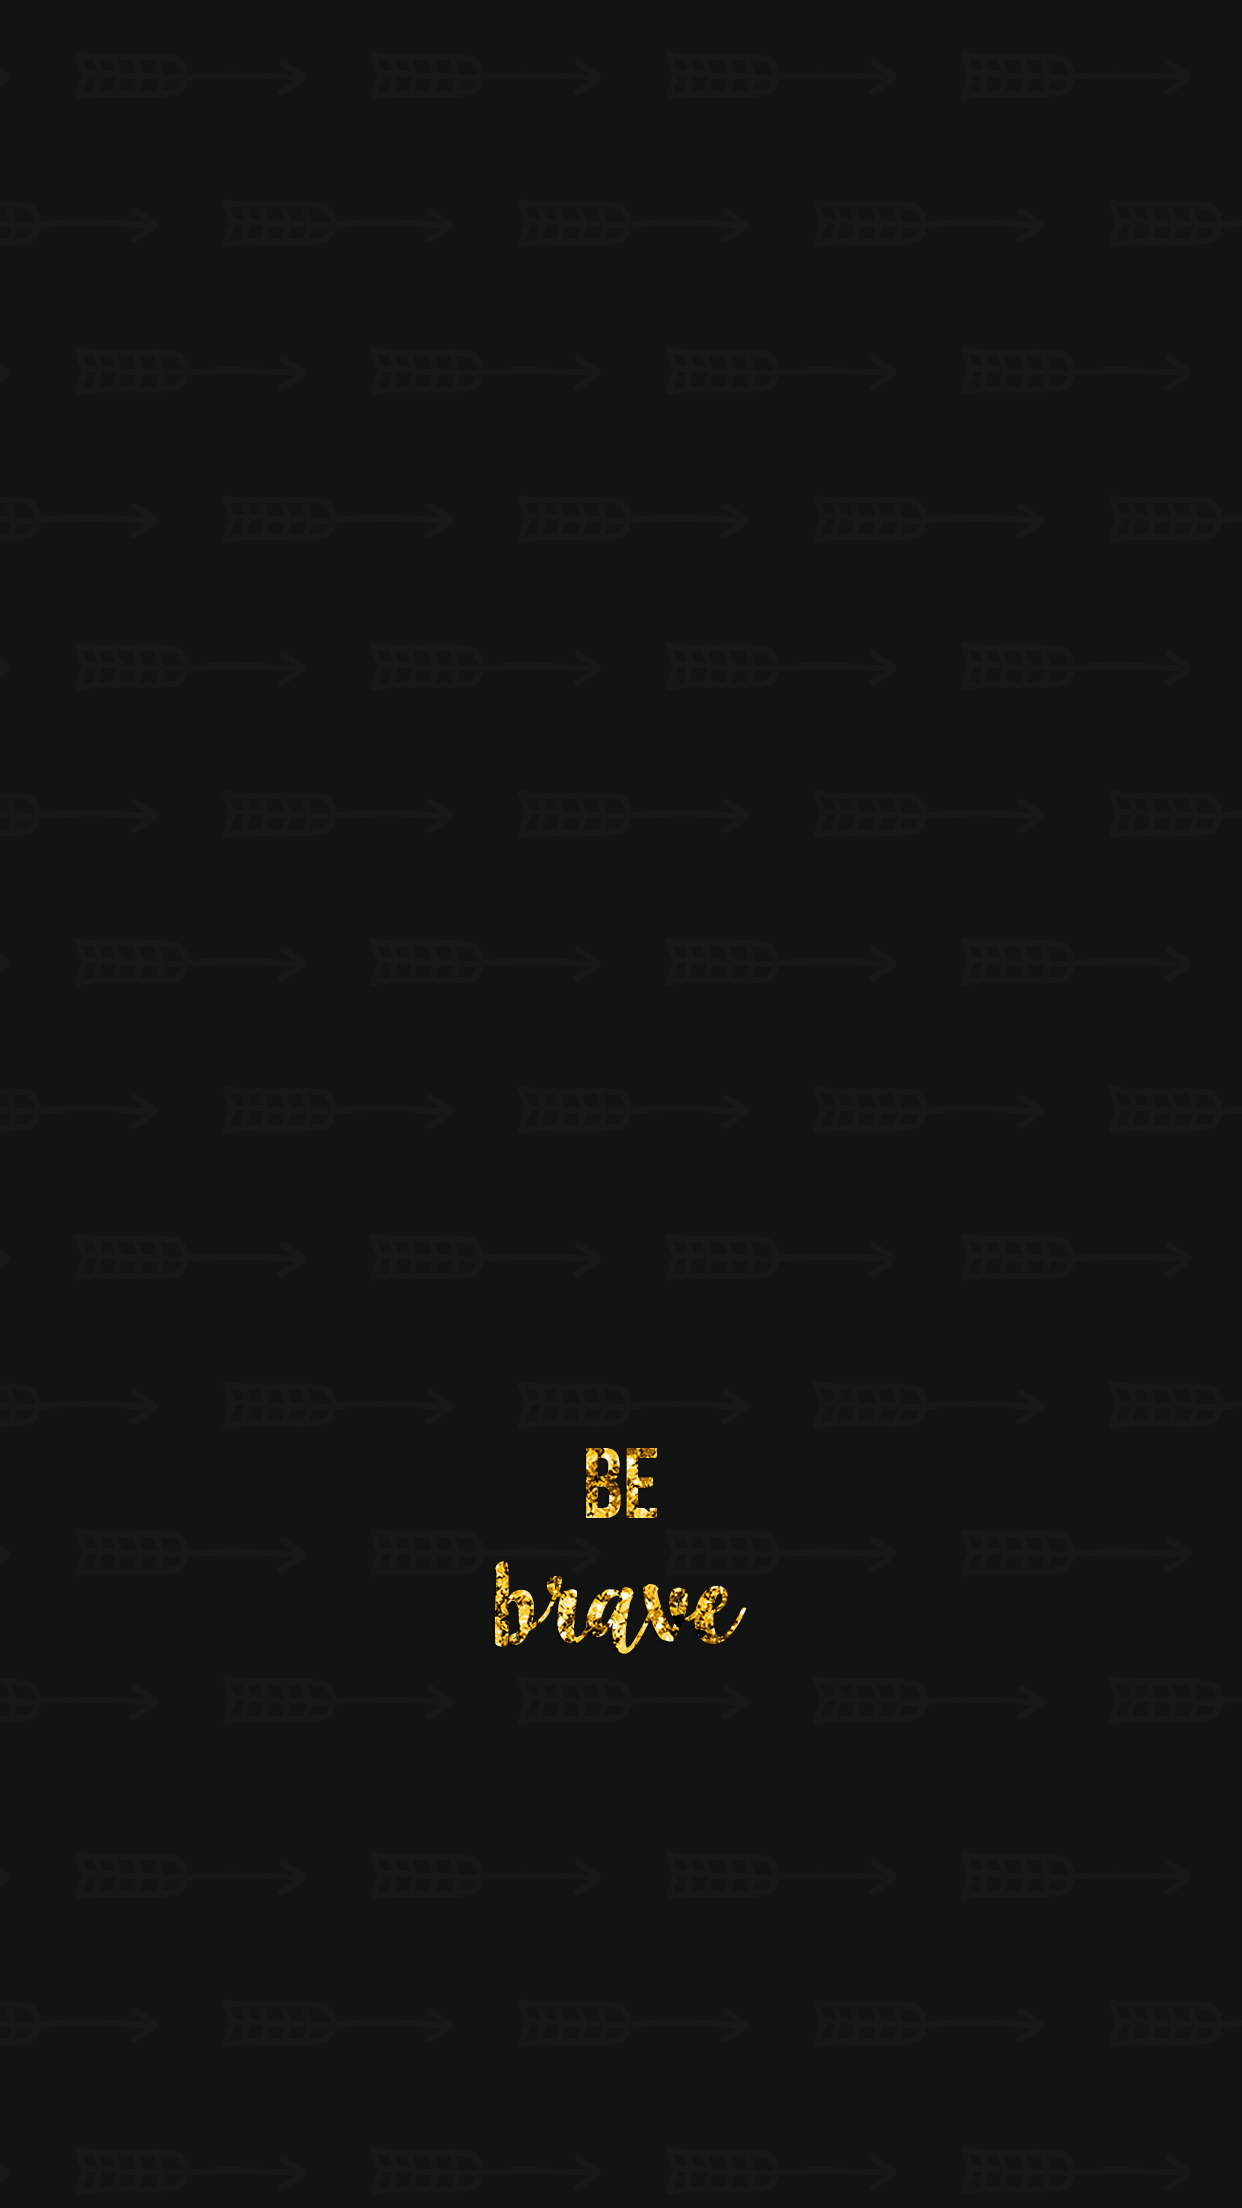 Hd wallpaper quotes for android - Wallpaper Background Hd Iphone Android Black Gold Glitter